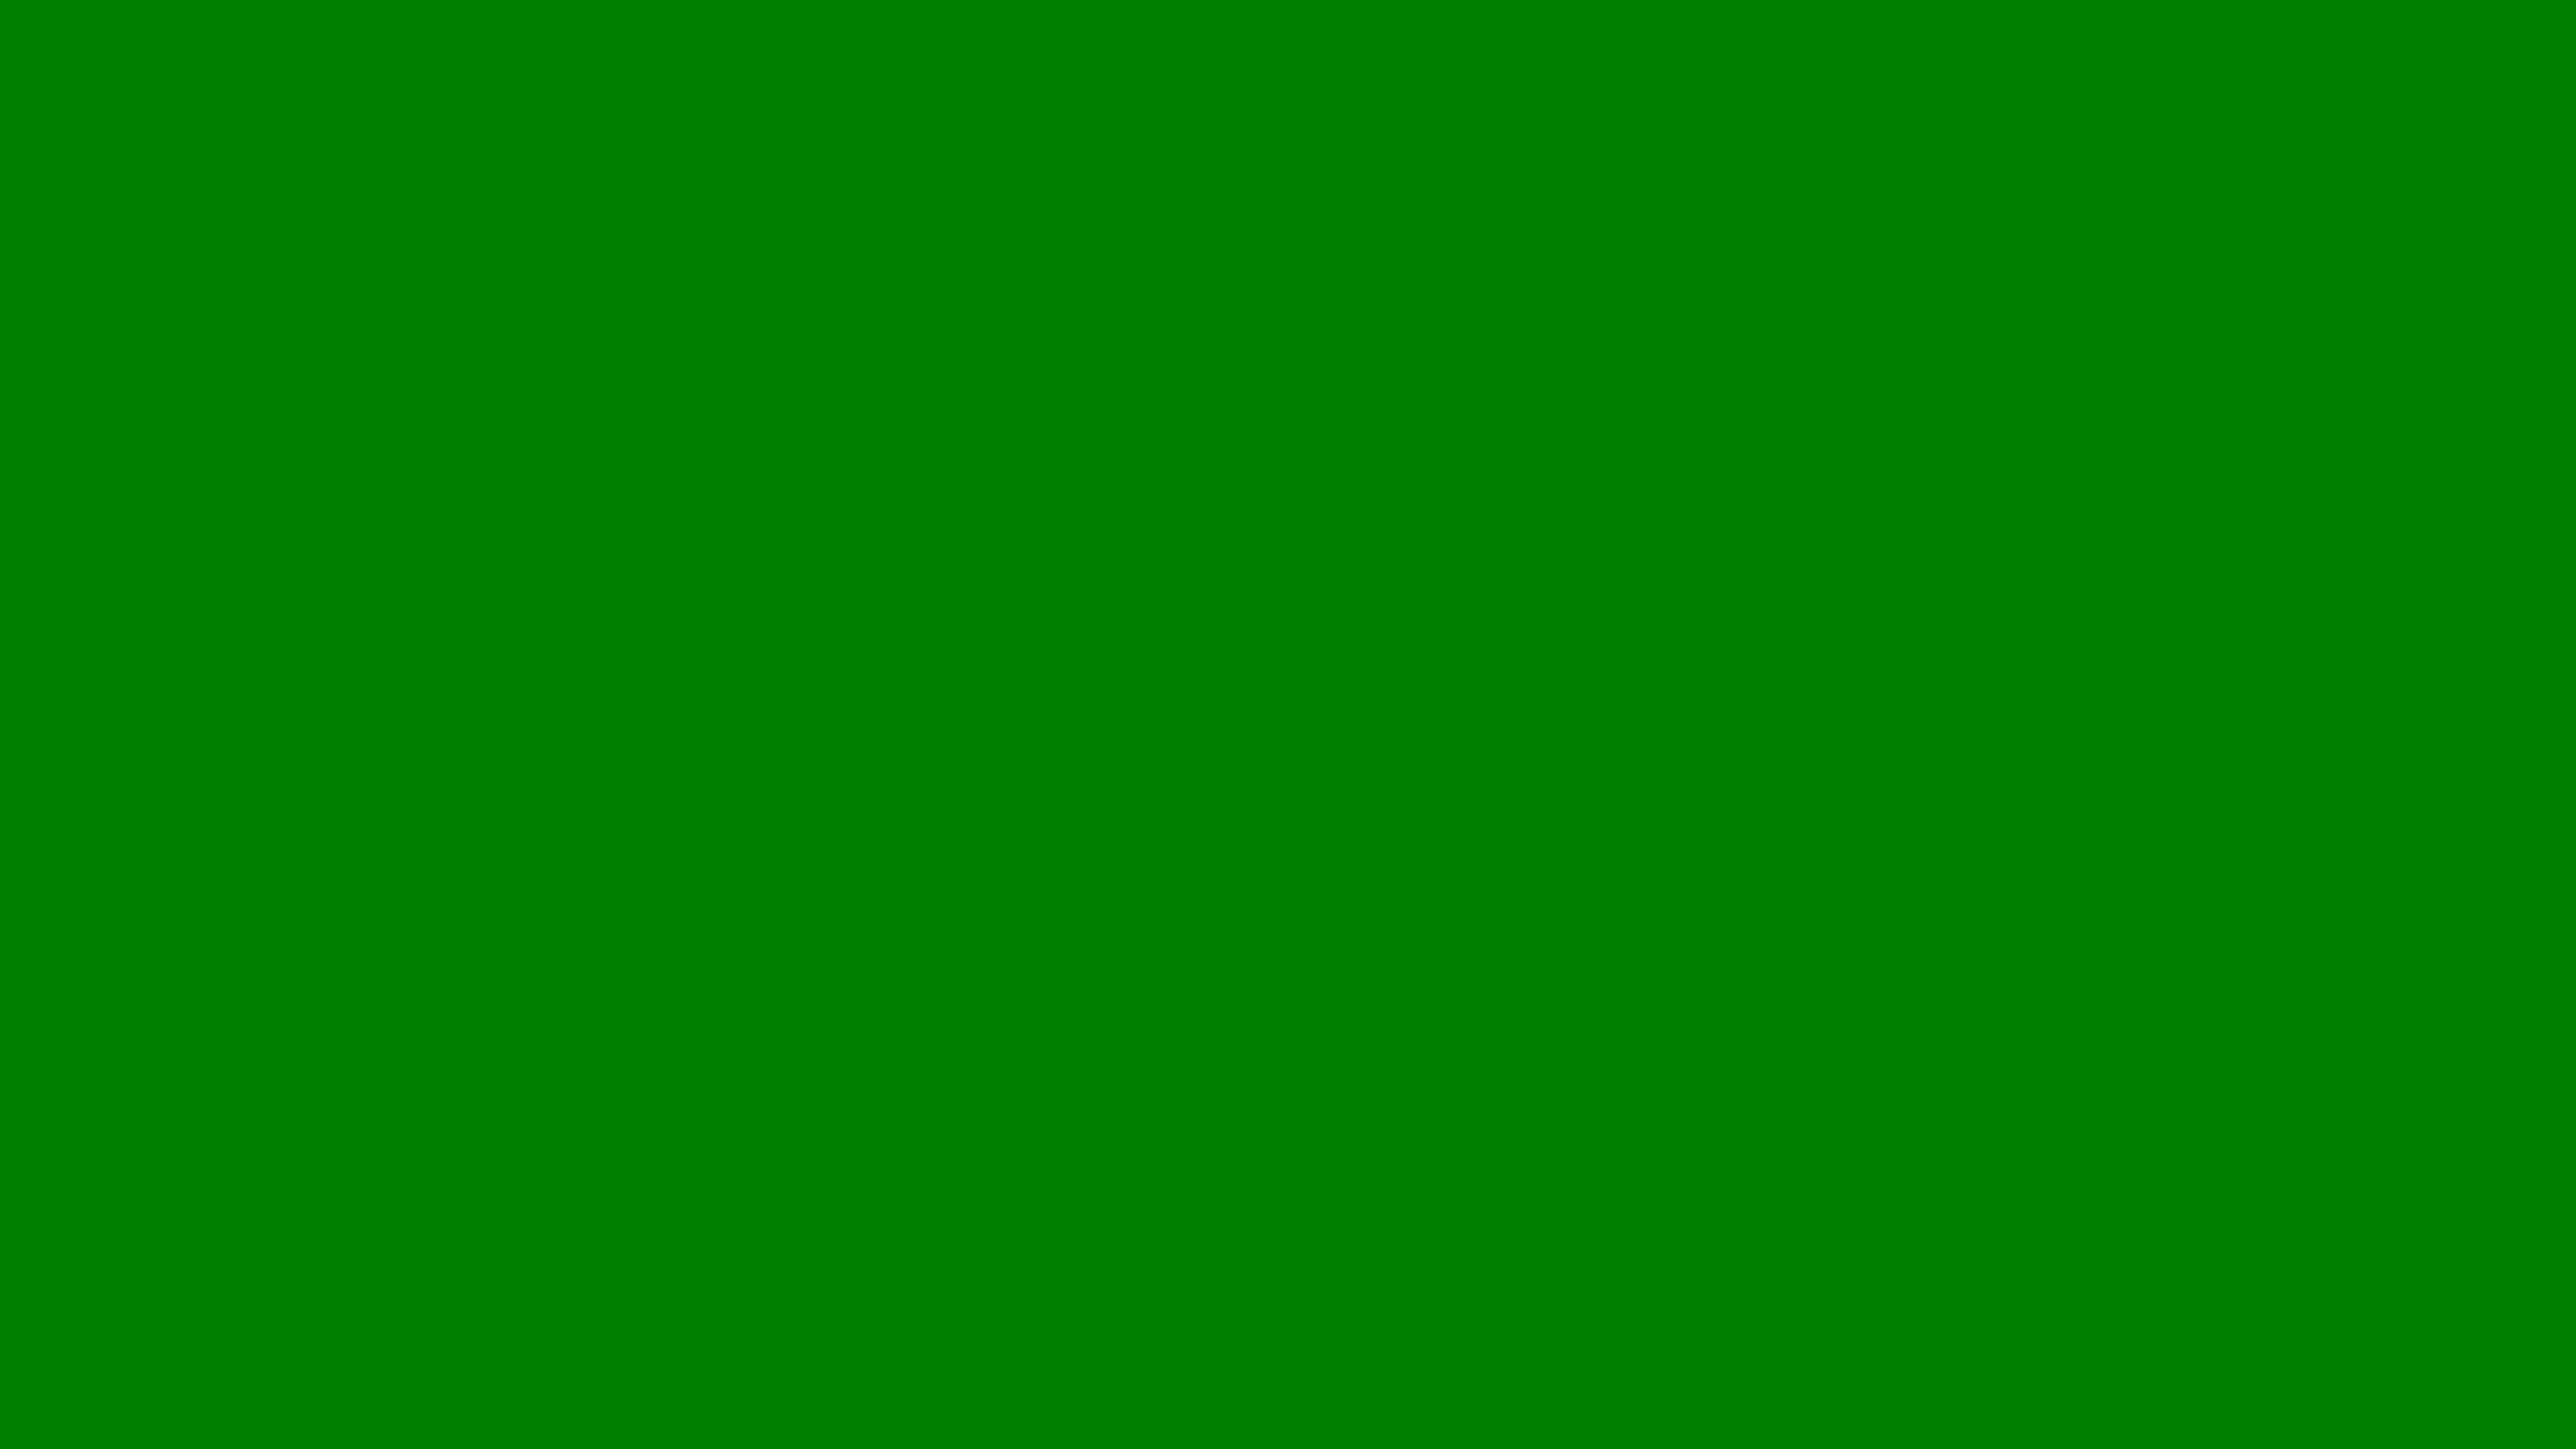 7680x4320 Green Web Color Solid Color Background